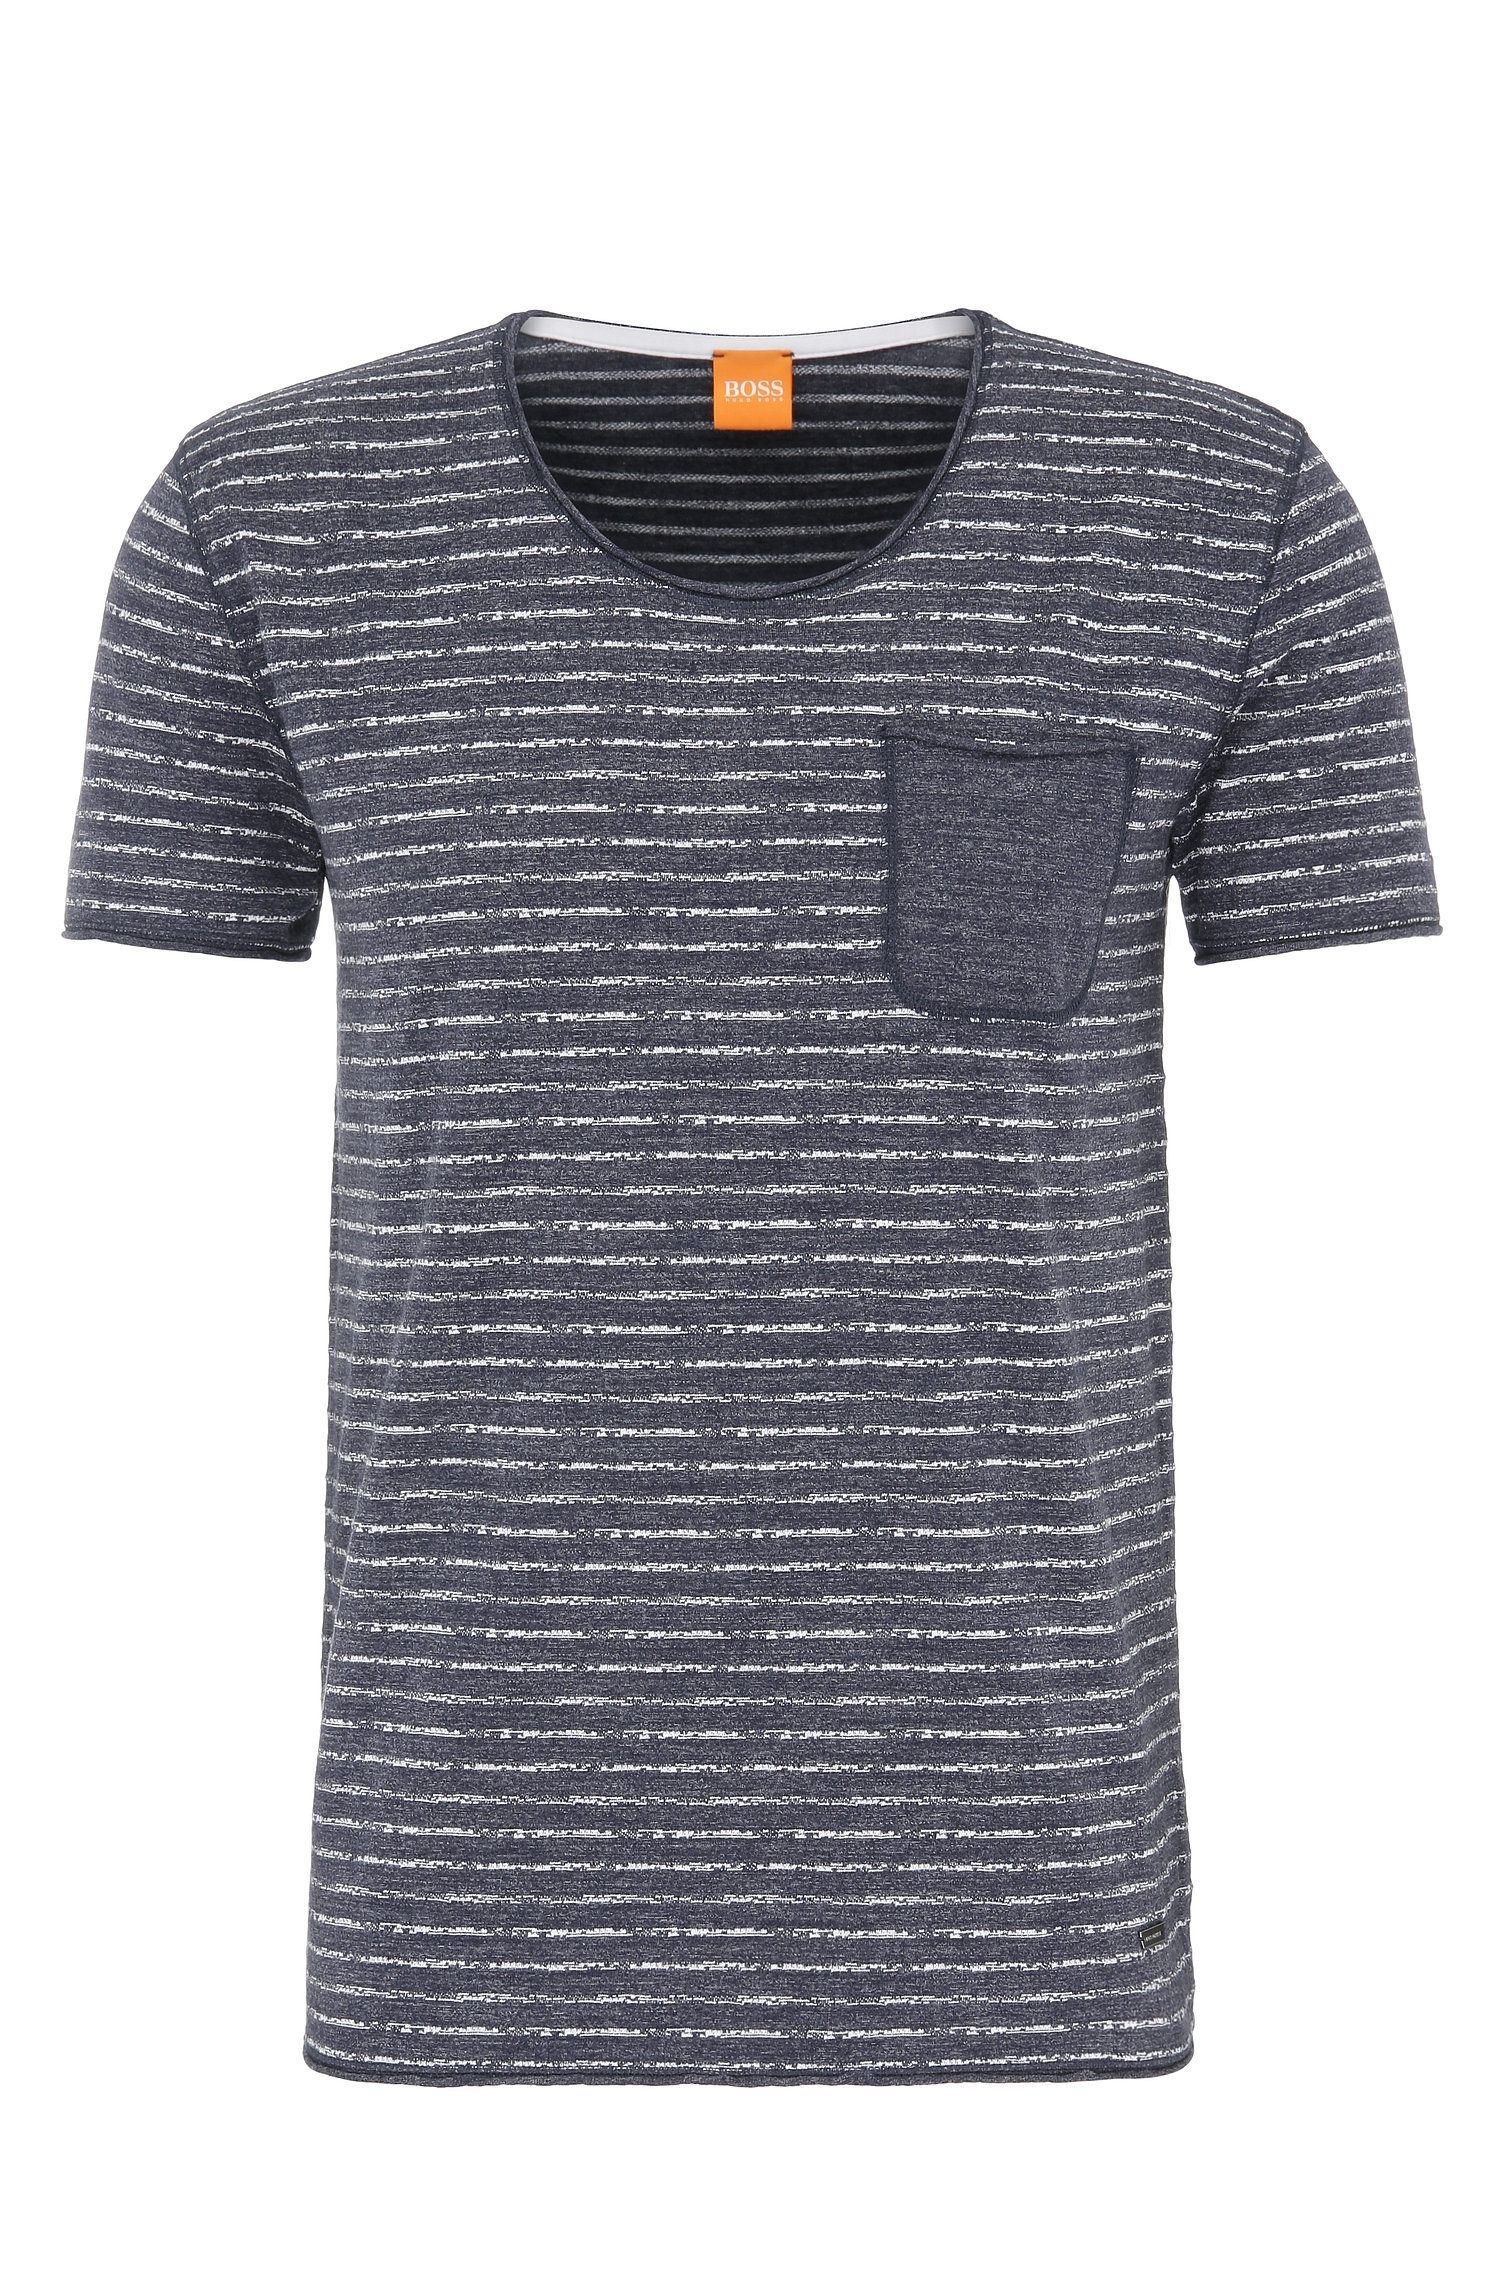 'Toa' | Cotton Stripe Pocket T-Shirt